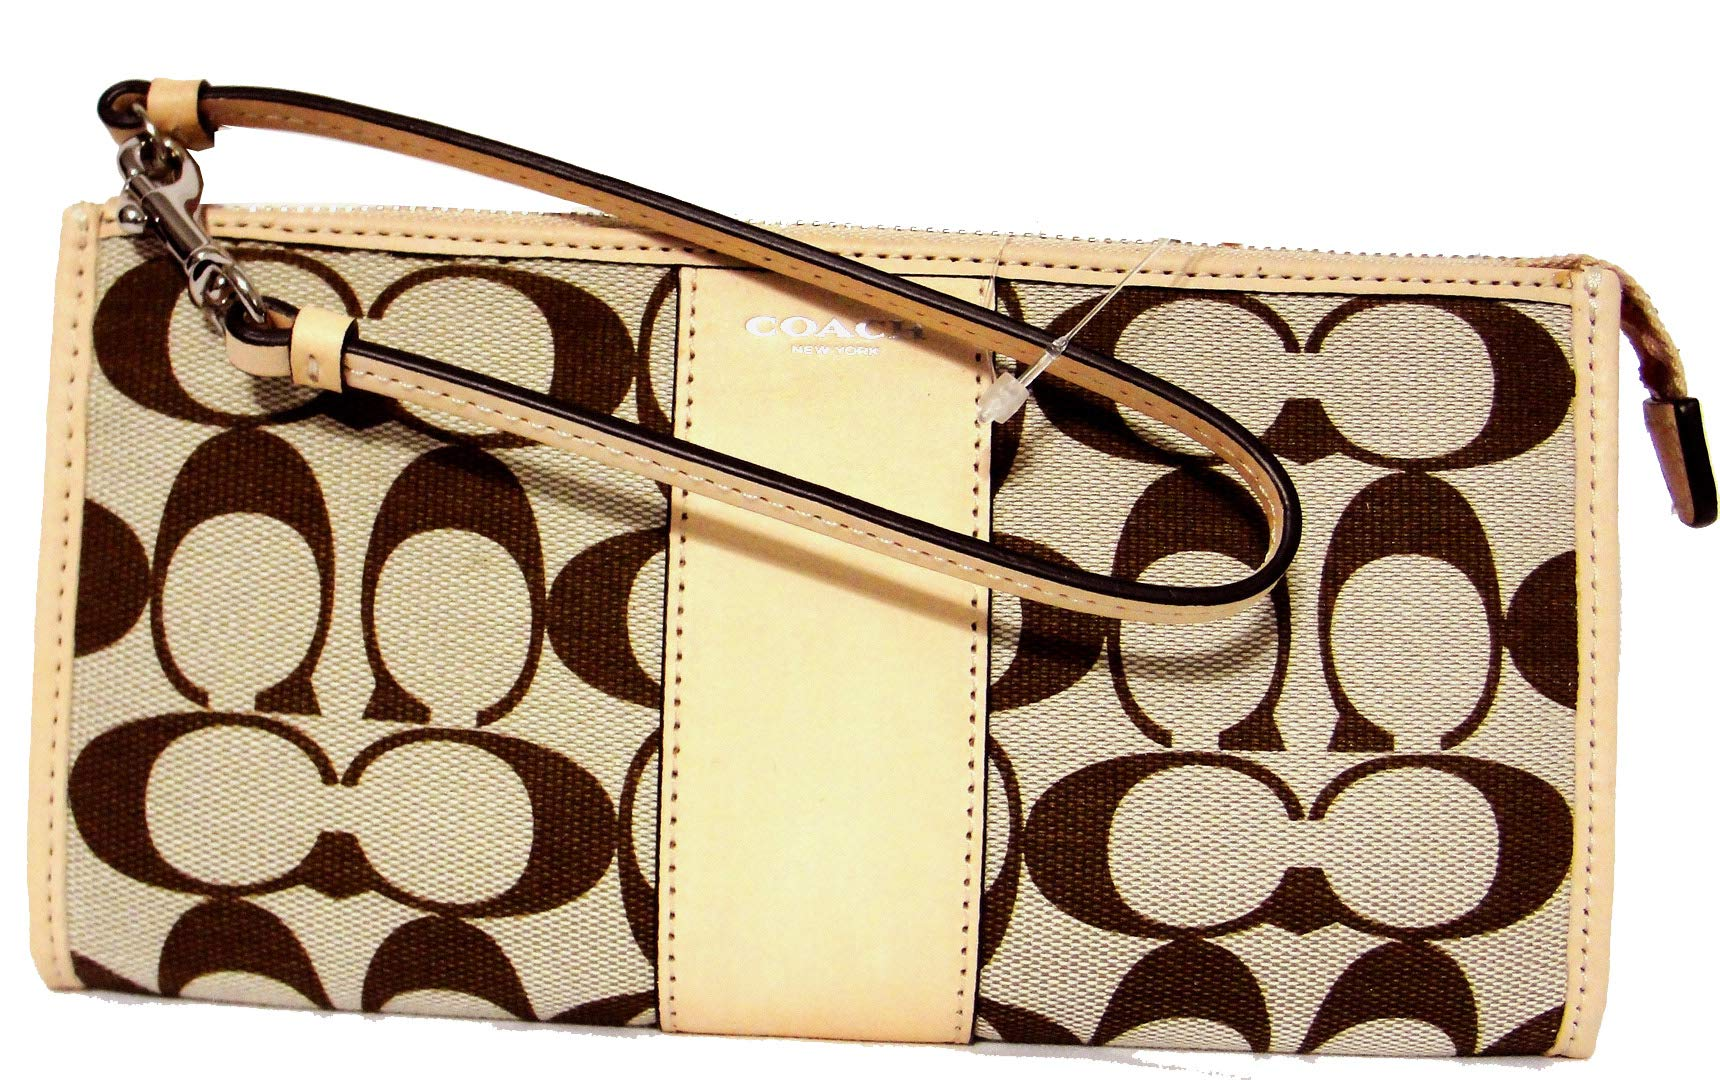 COACH Women's Box Legacy Printed Signature Zippy Silver/Light Khaki Madeira/Vch